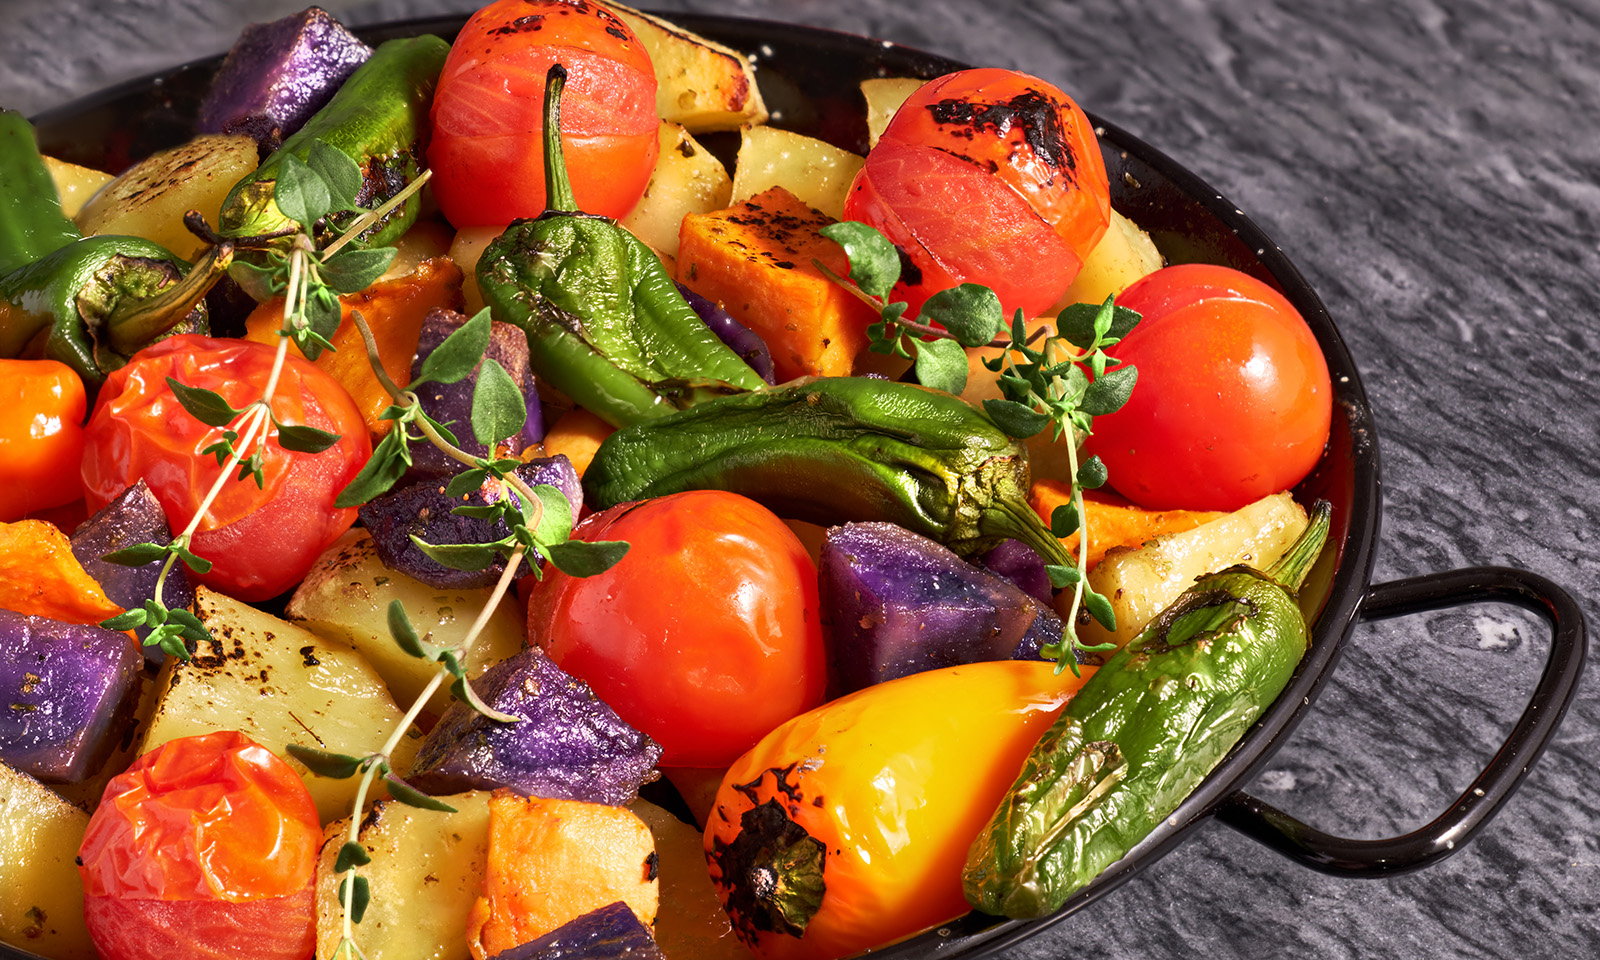 food-that-may-cause-harm-when-reheated-vegetables-in-skillet